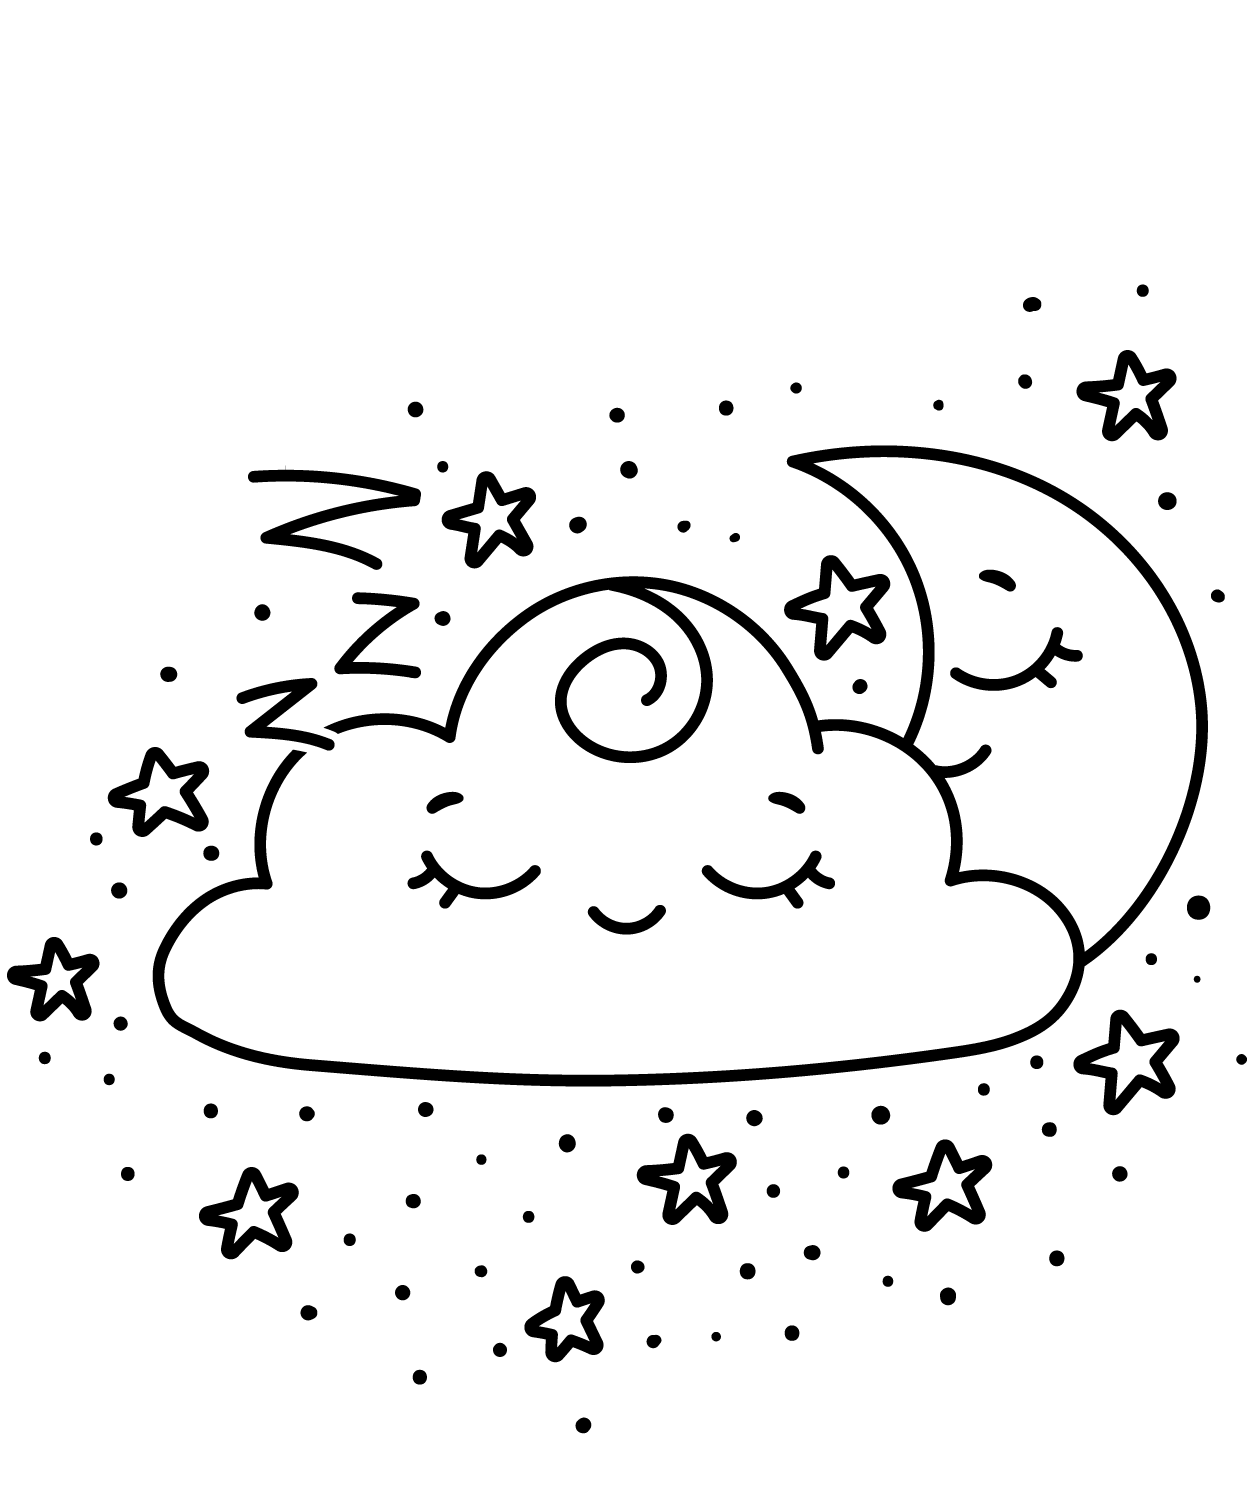 KAWAII SLEEPY MOON HAPPY CLOUD-Clipart Coloring Pages for Kids Adults Art Activities Line Art